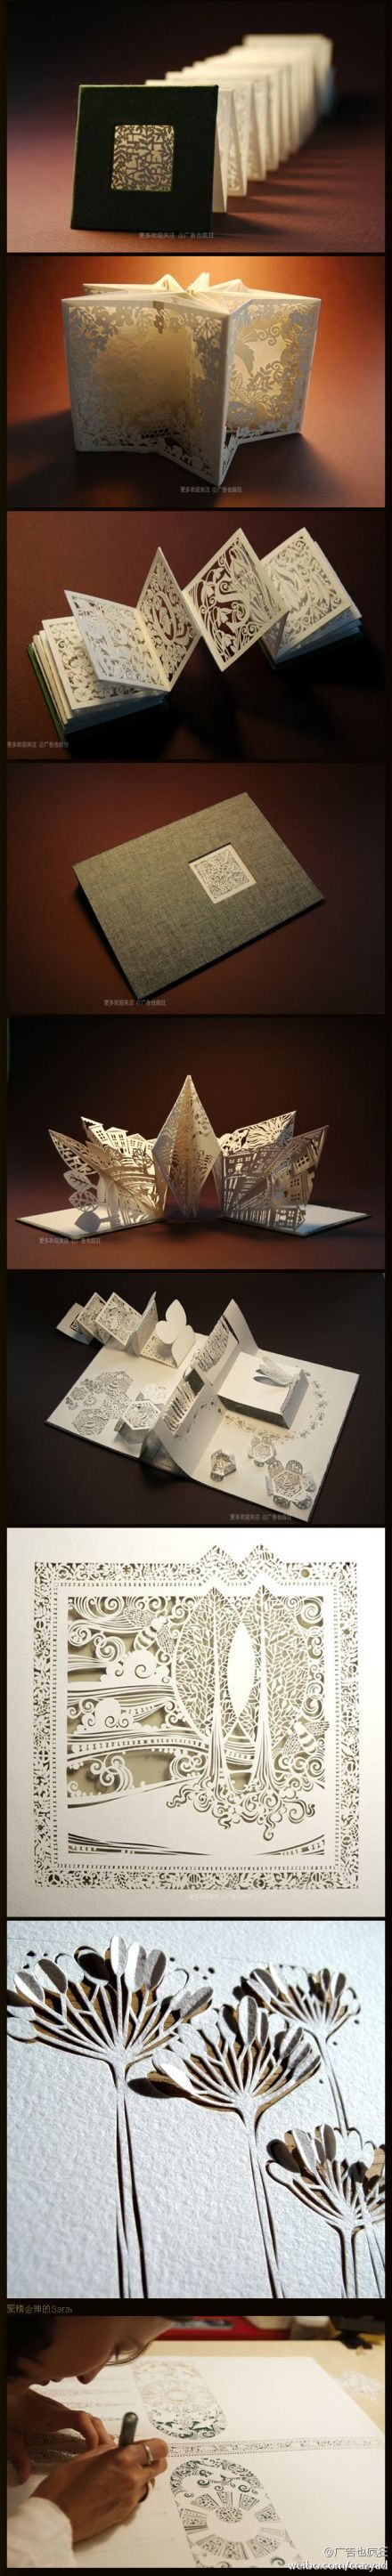 paper carving in accordion book..